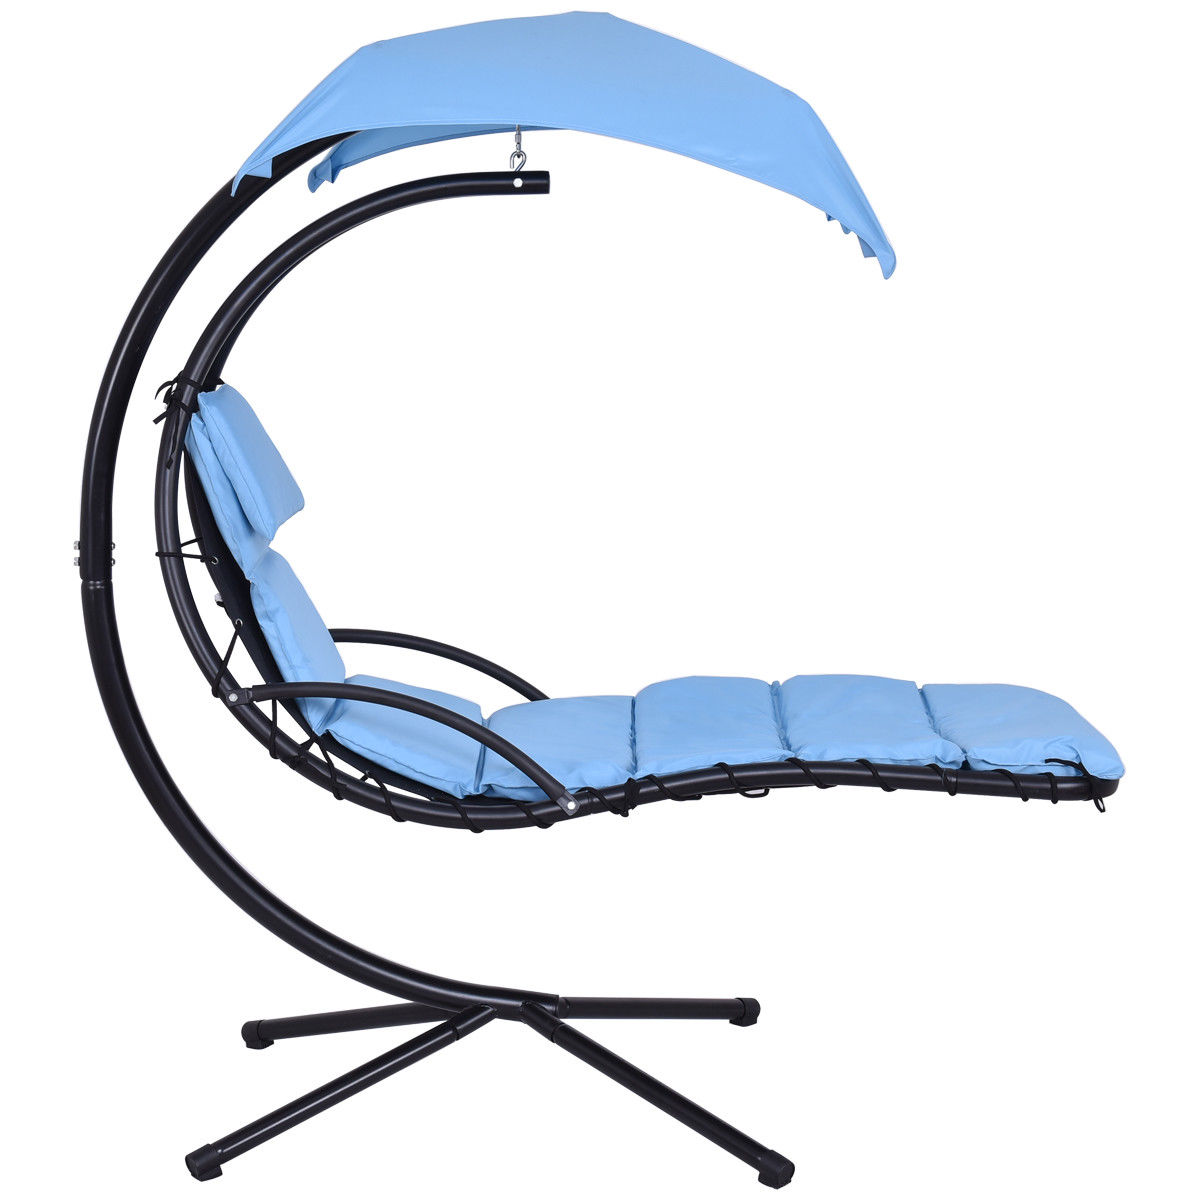 Gymax Blue Swing Hammock Chair Hanging Chaise Lounger Chair Arc Stand Canopy